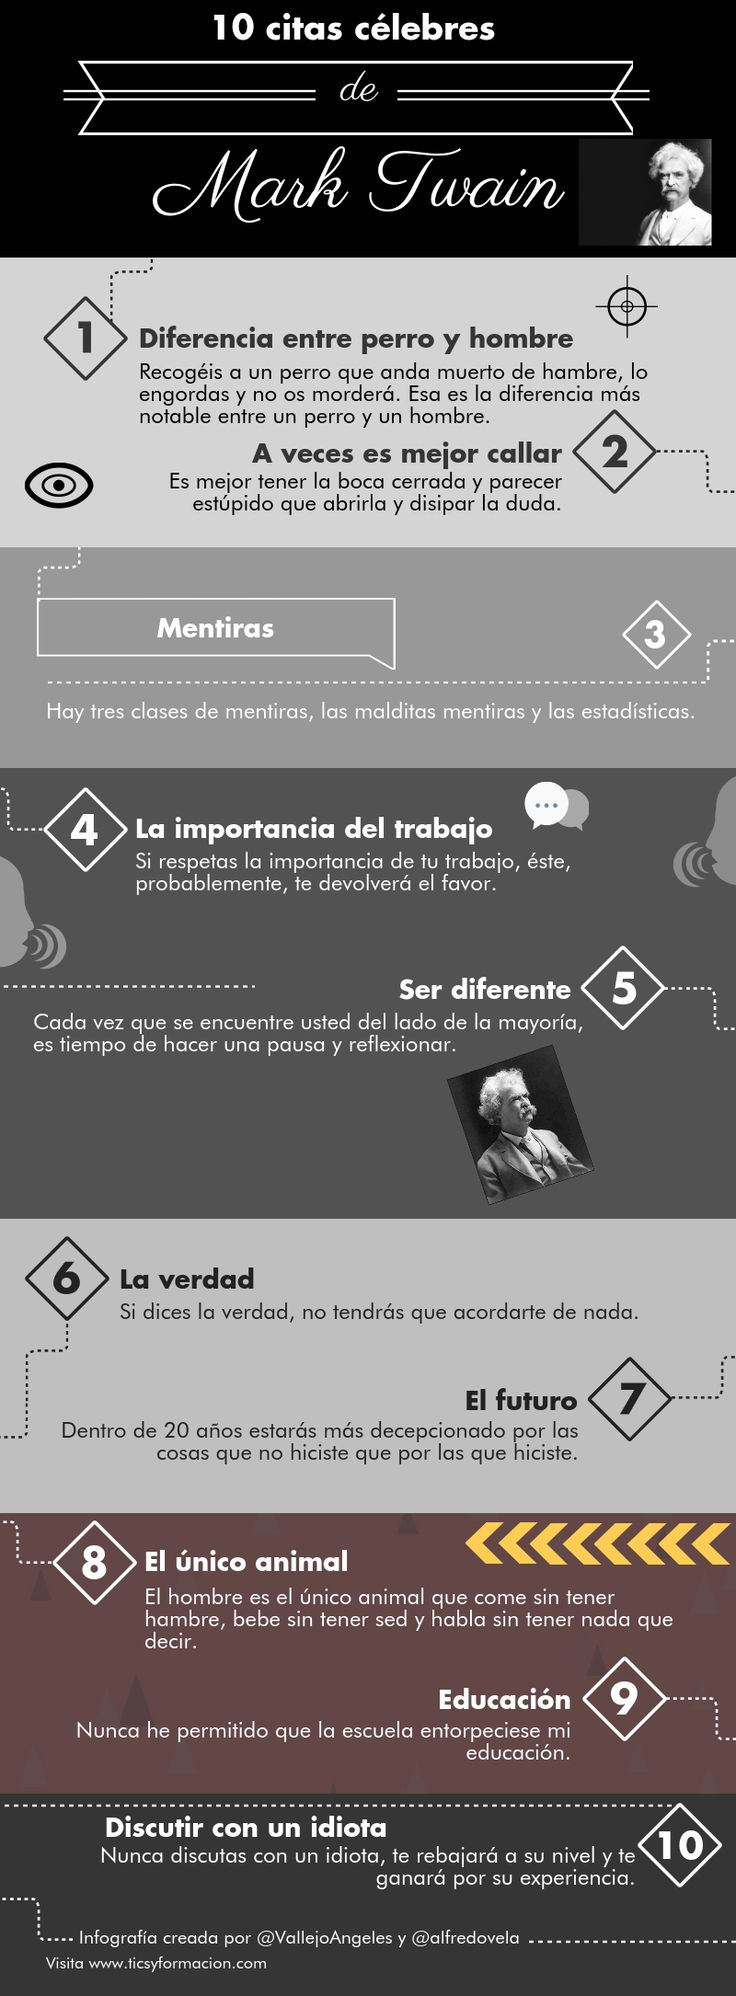 10 citas célebres de Mark Twain #quotes